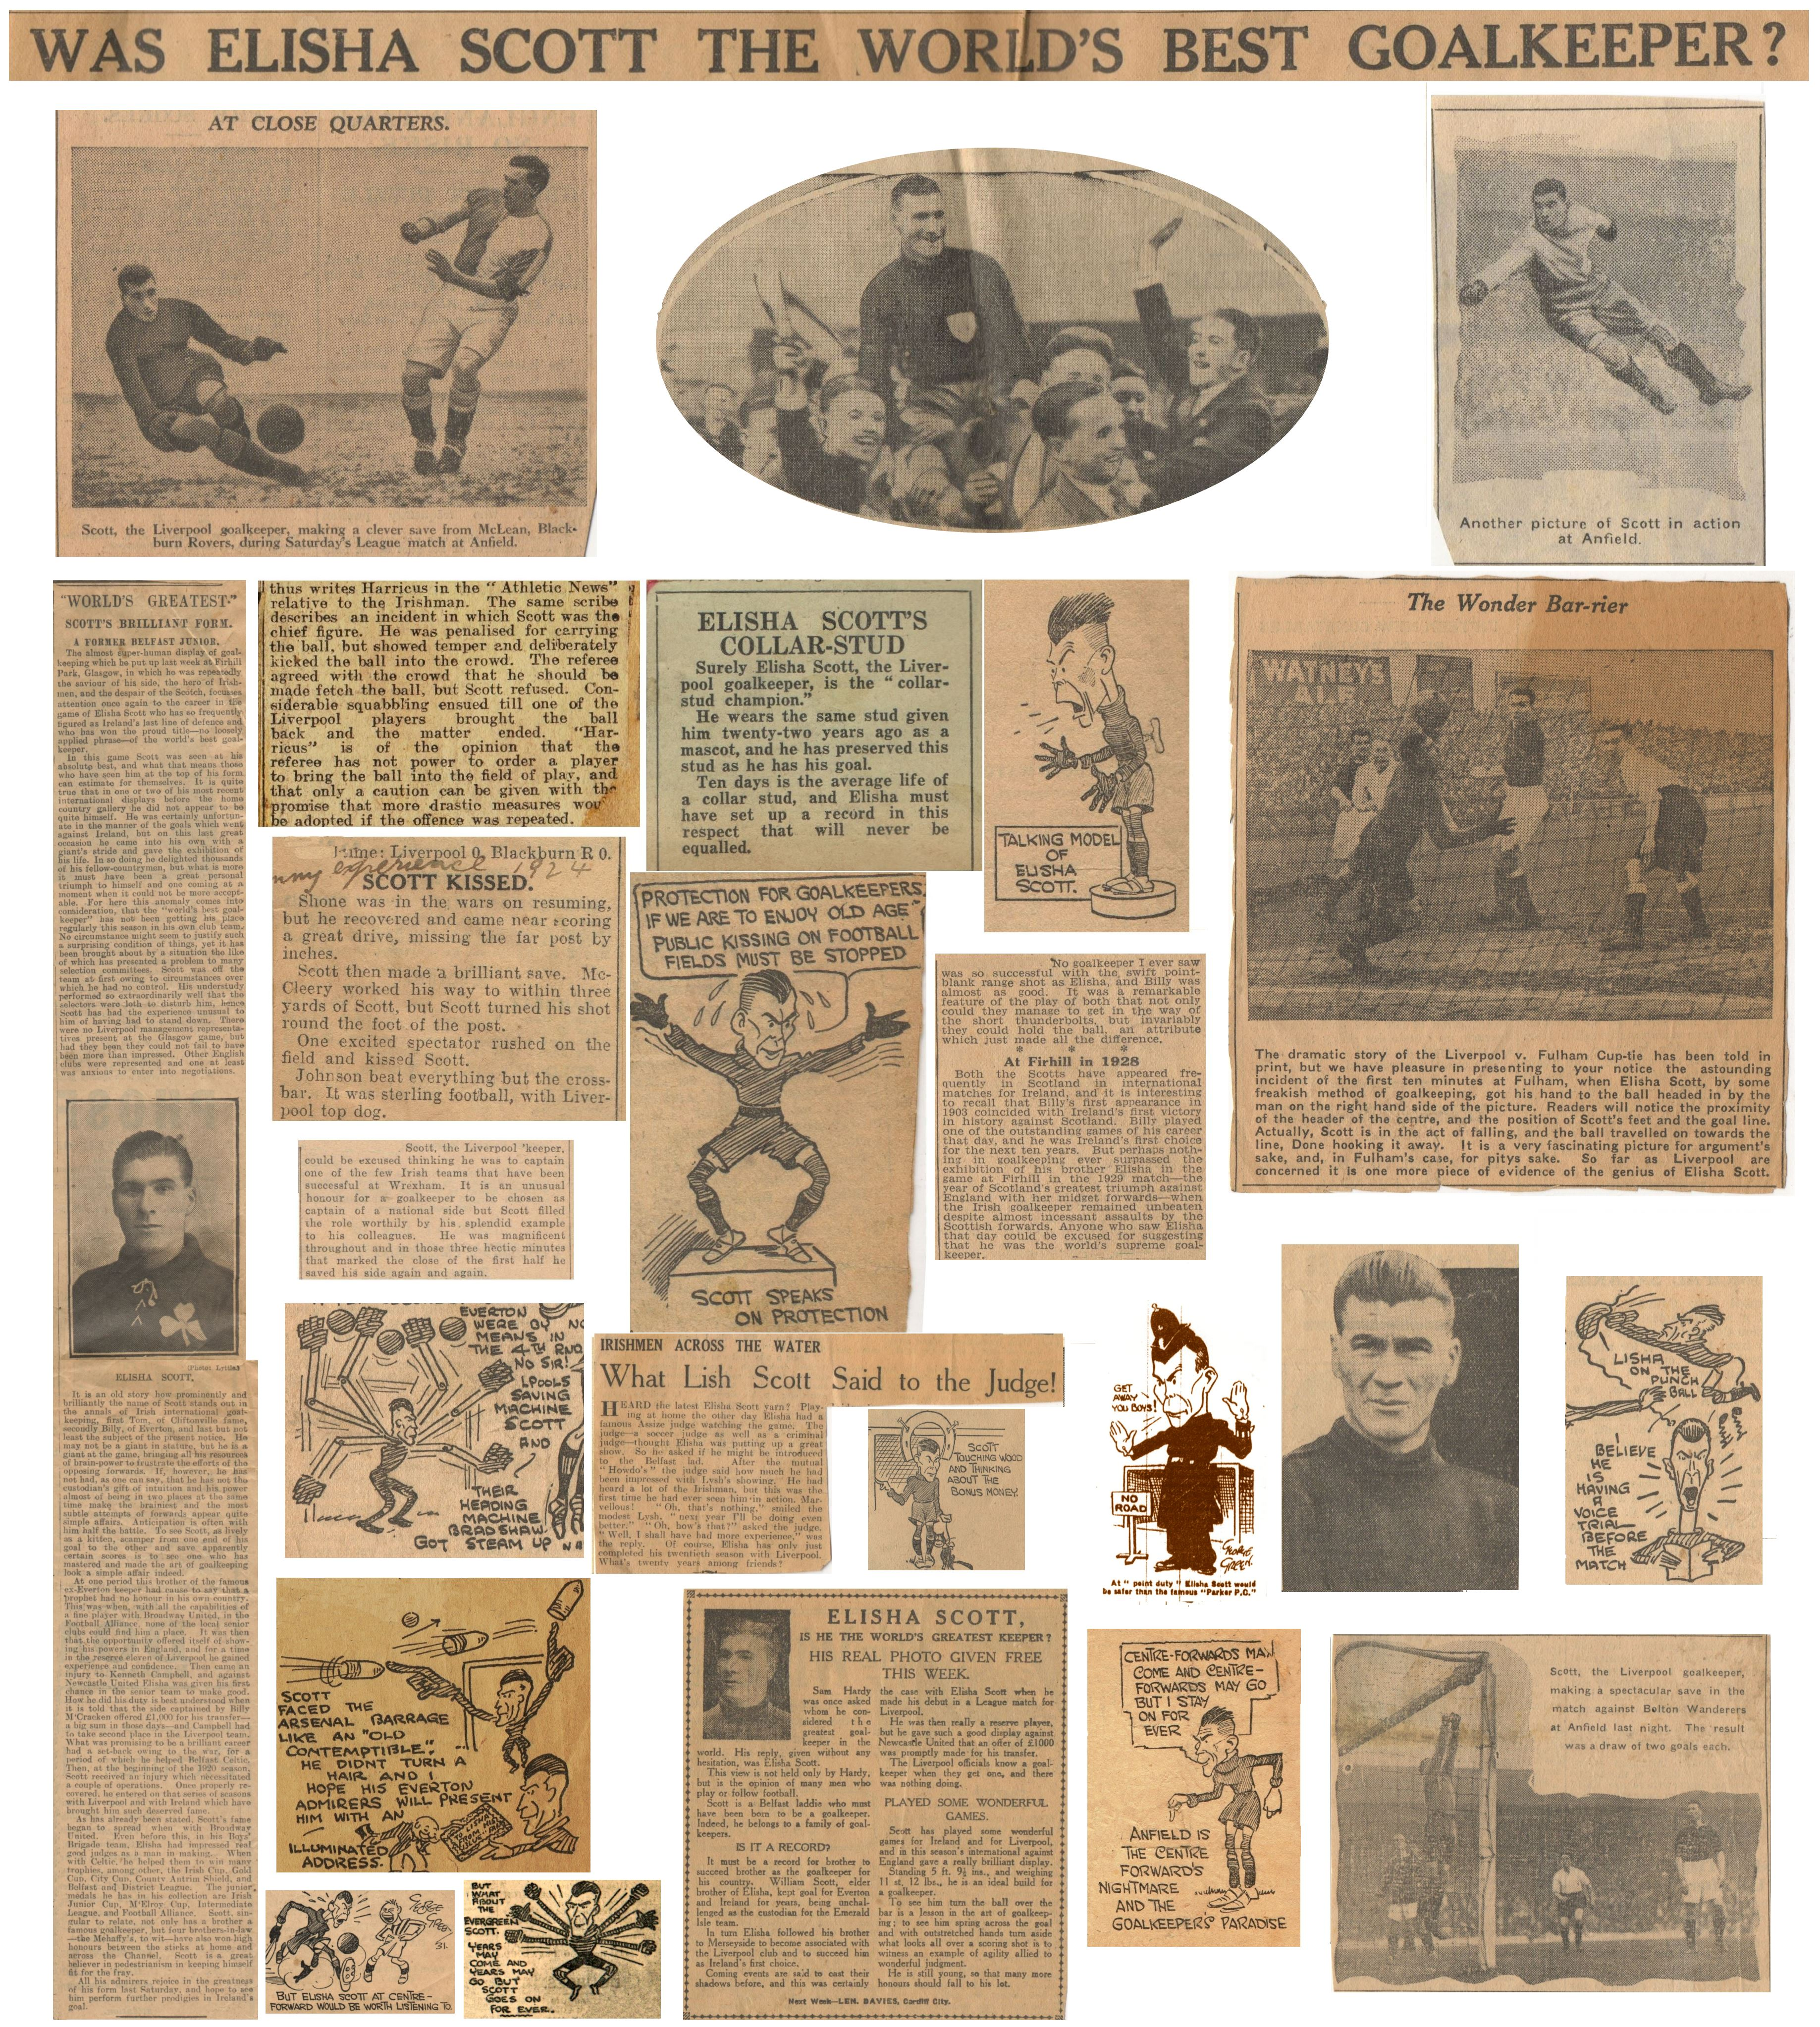 Was Elisha Scott the world's best goalkeeper? - a photo collage by LFChistory.net